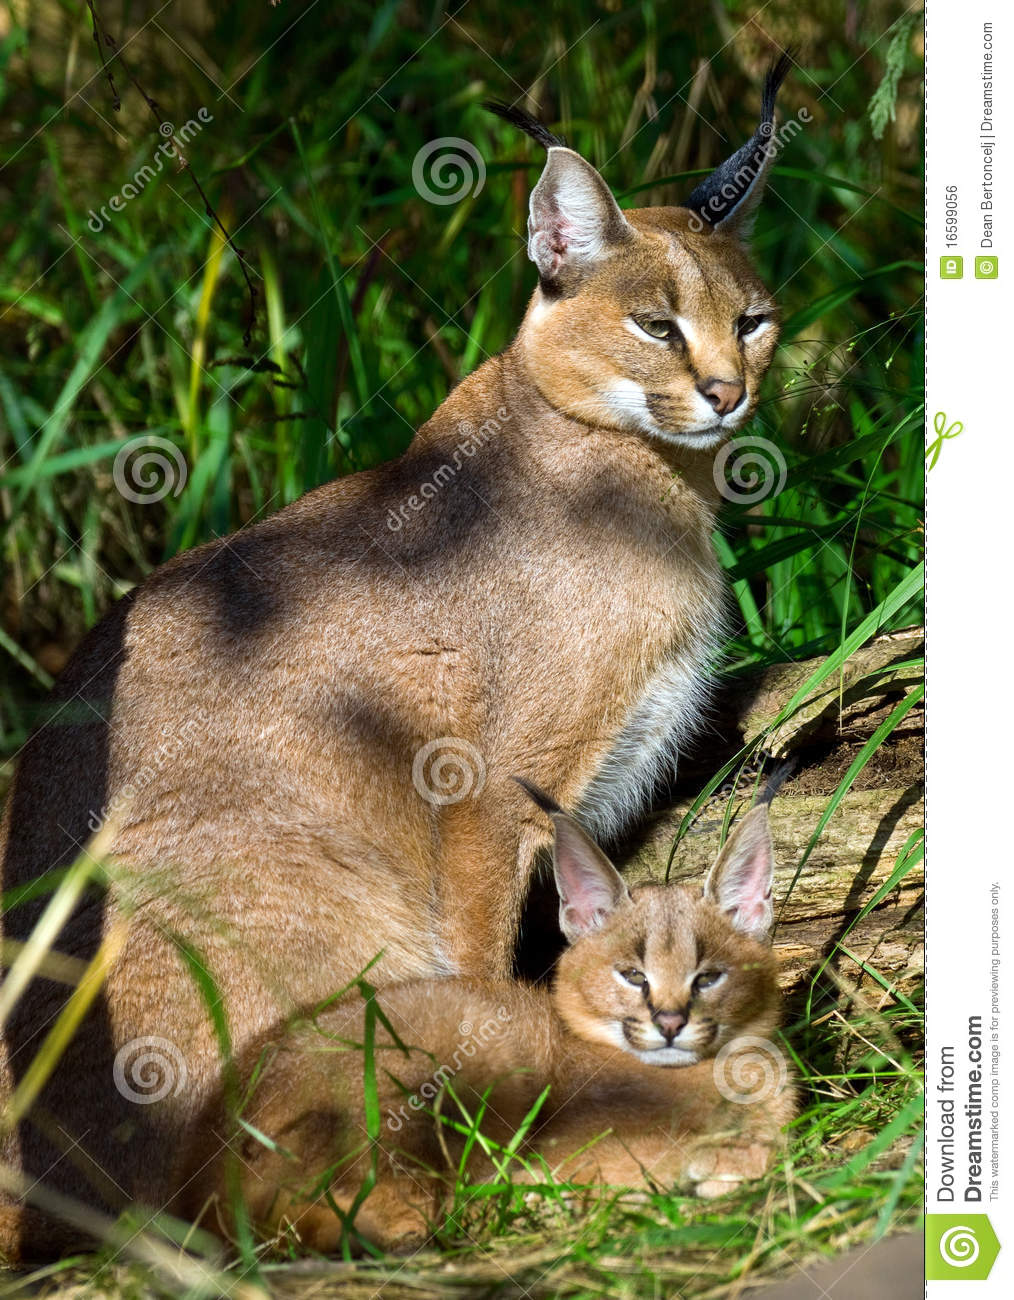 Caracal with baby